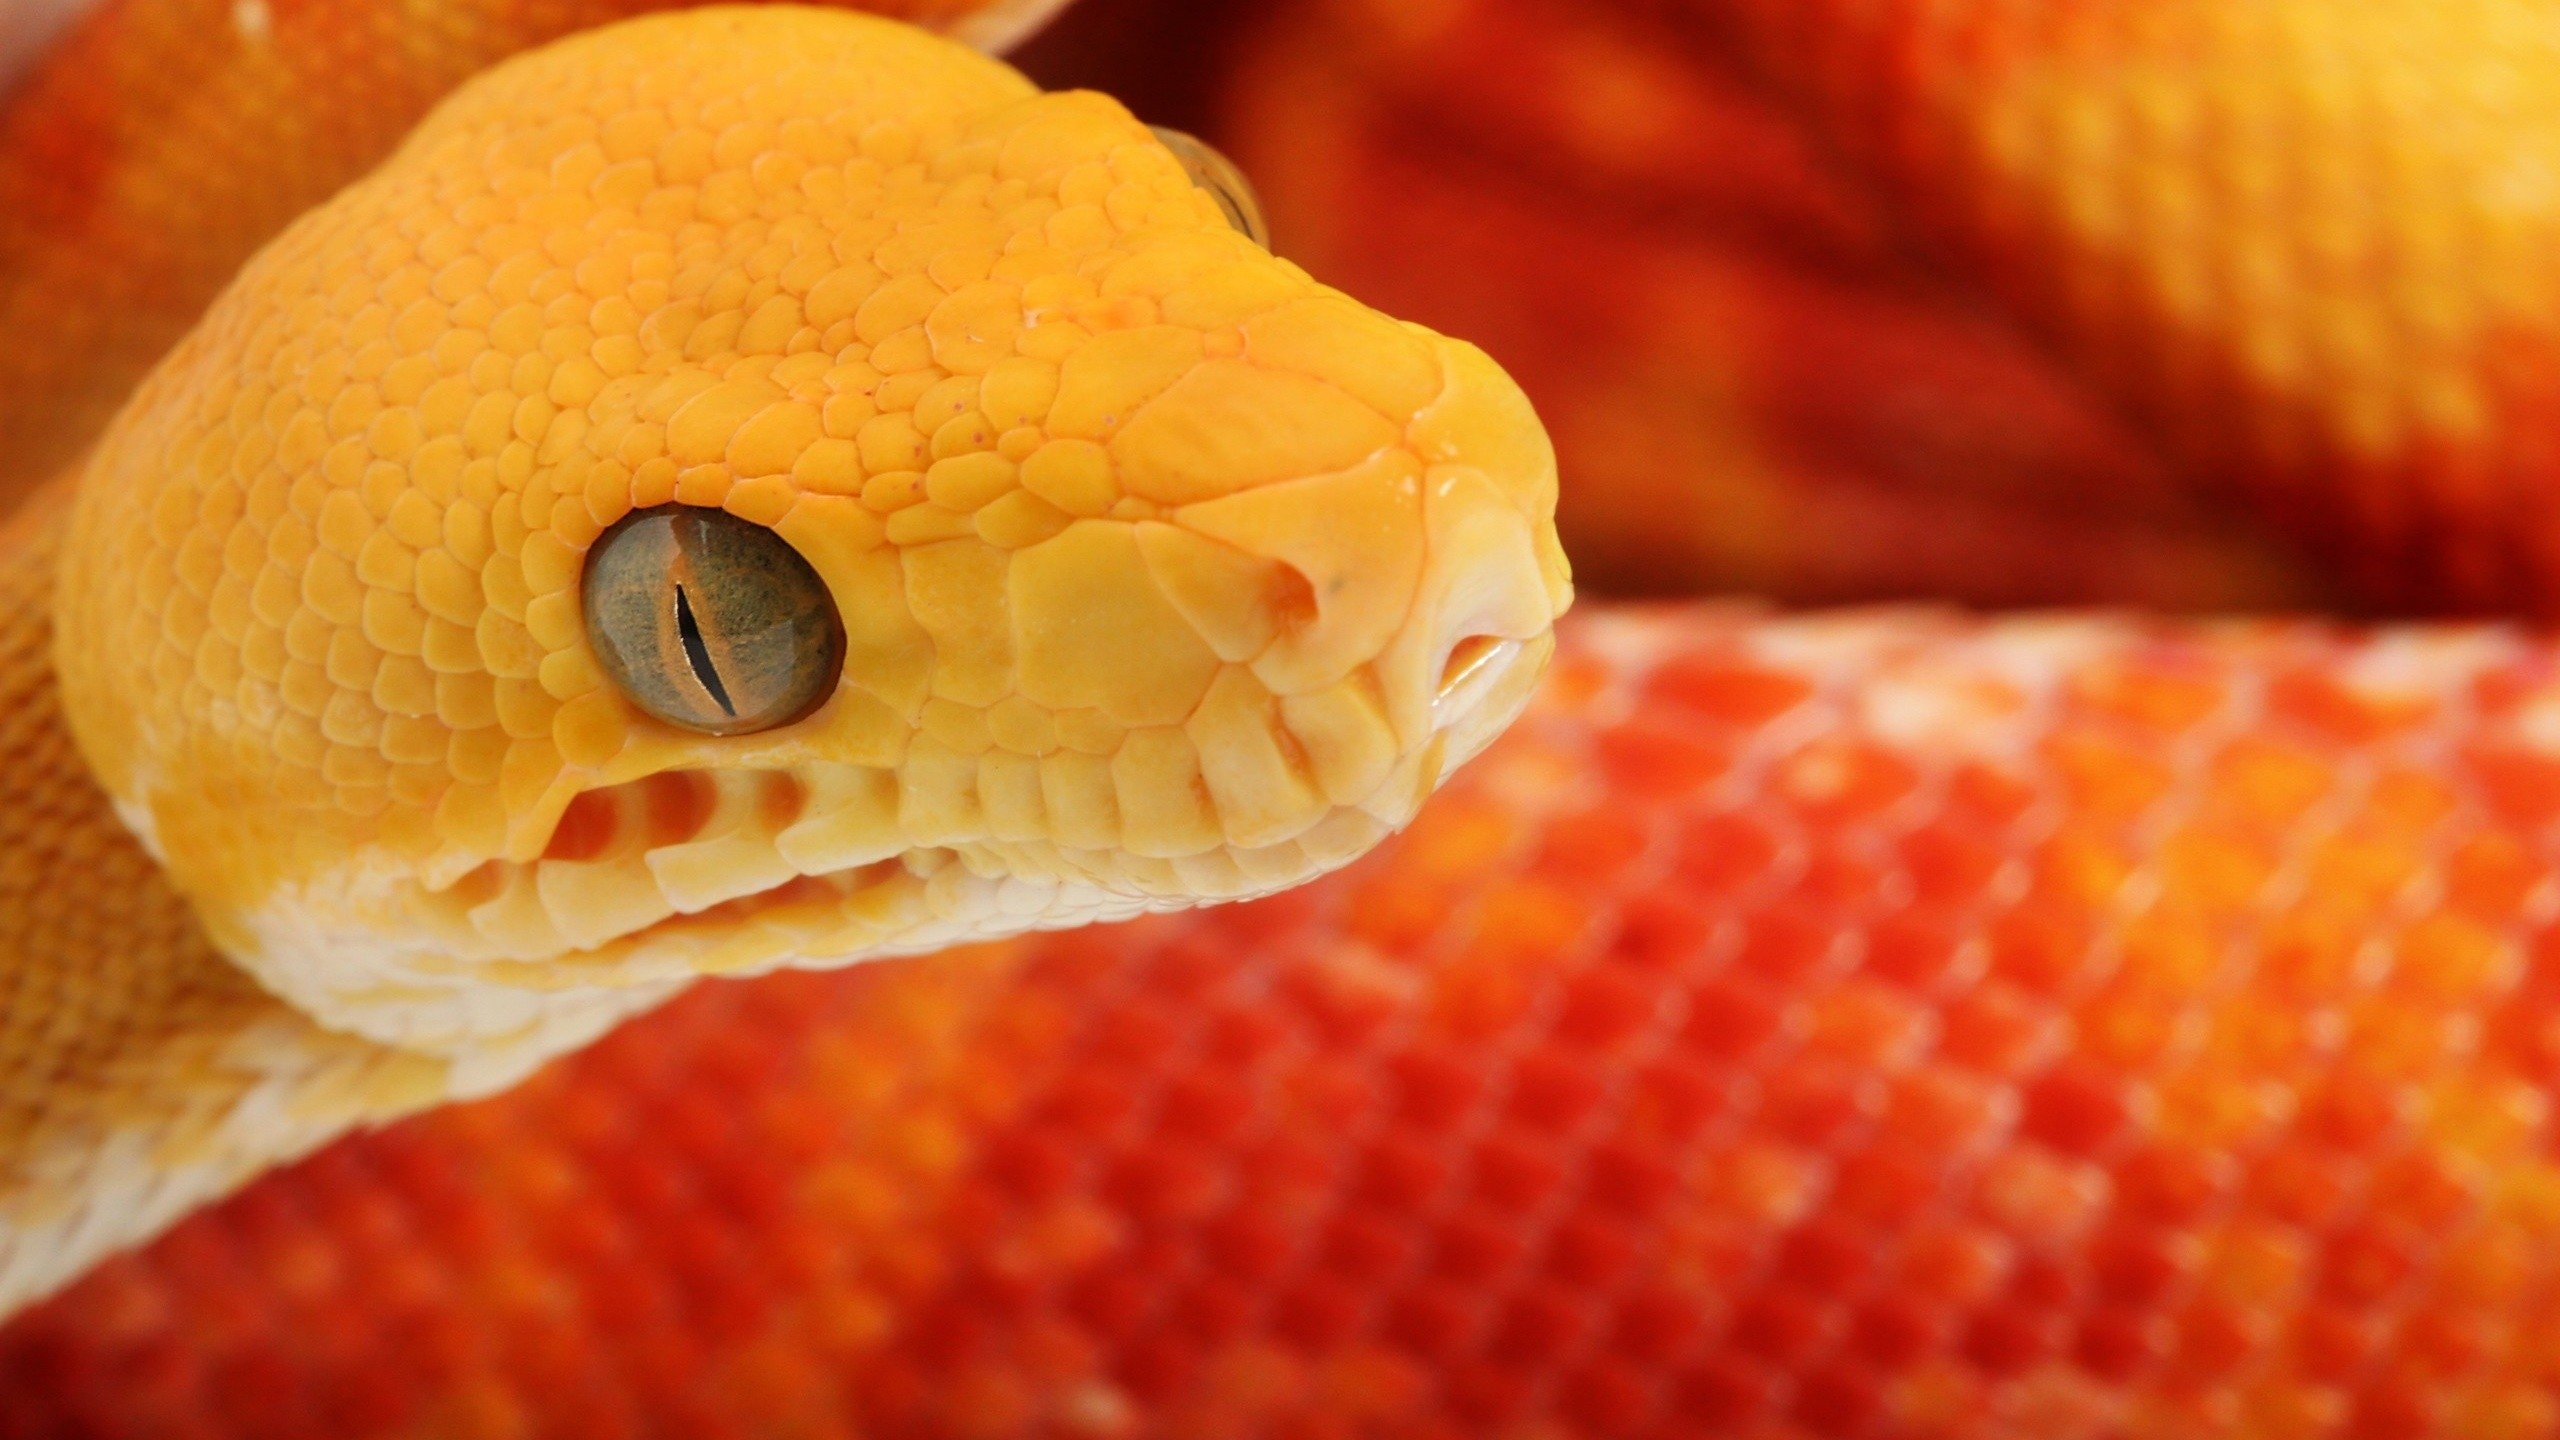 Free Snake high quality wallpaper ID:137194 for hd 2560x1440 desktop